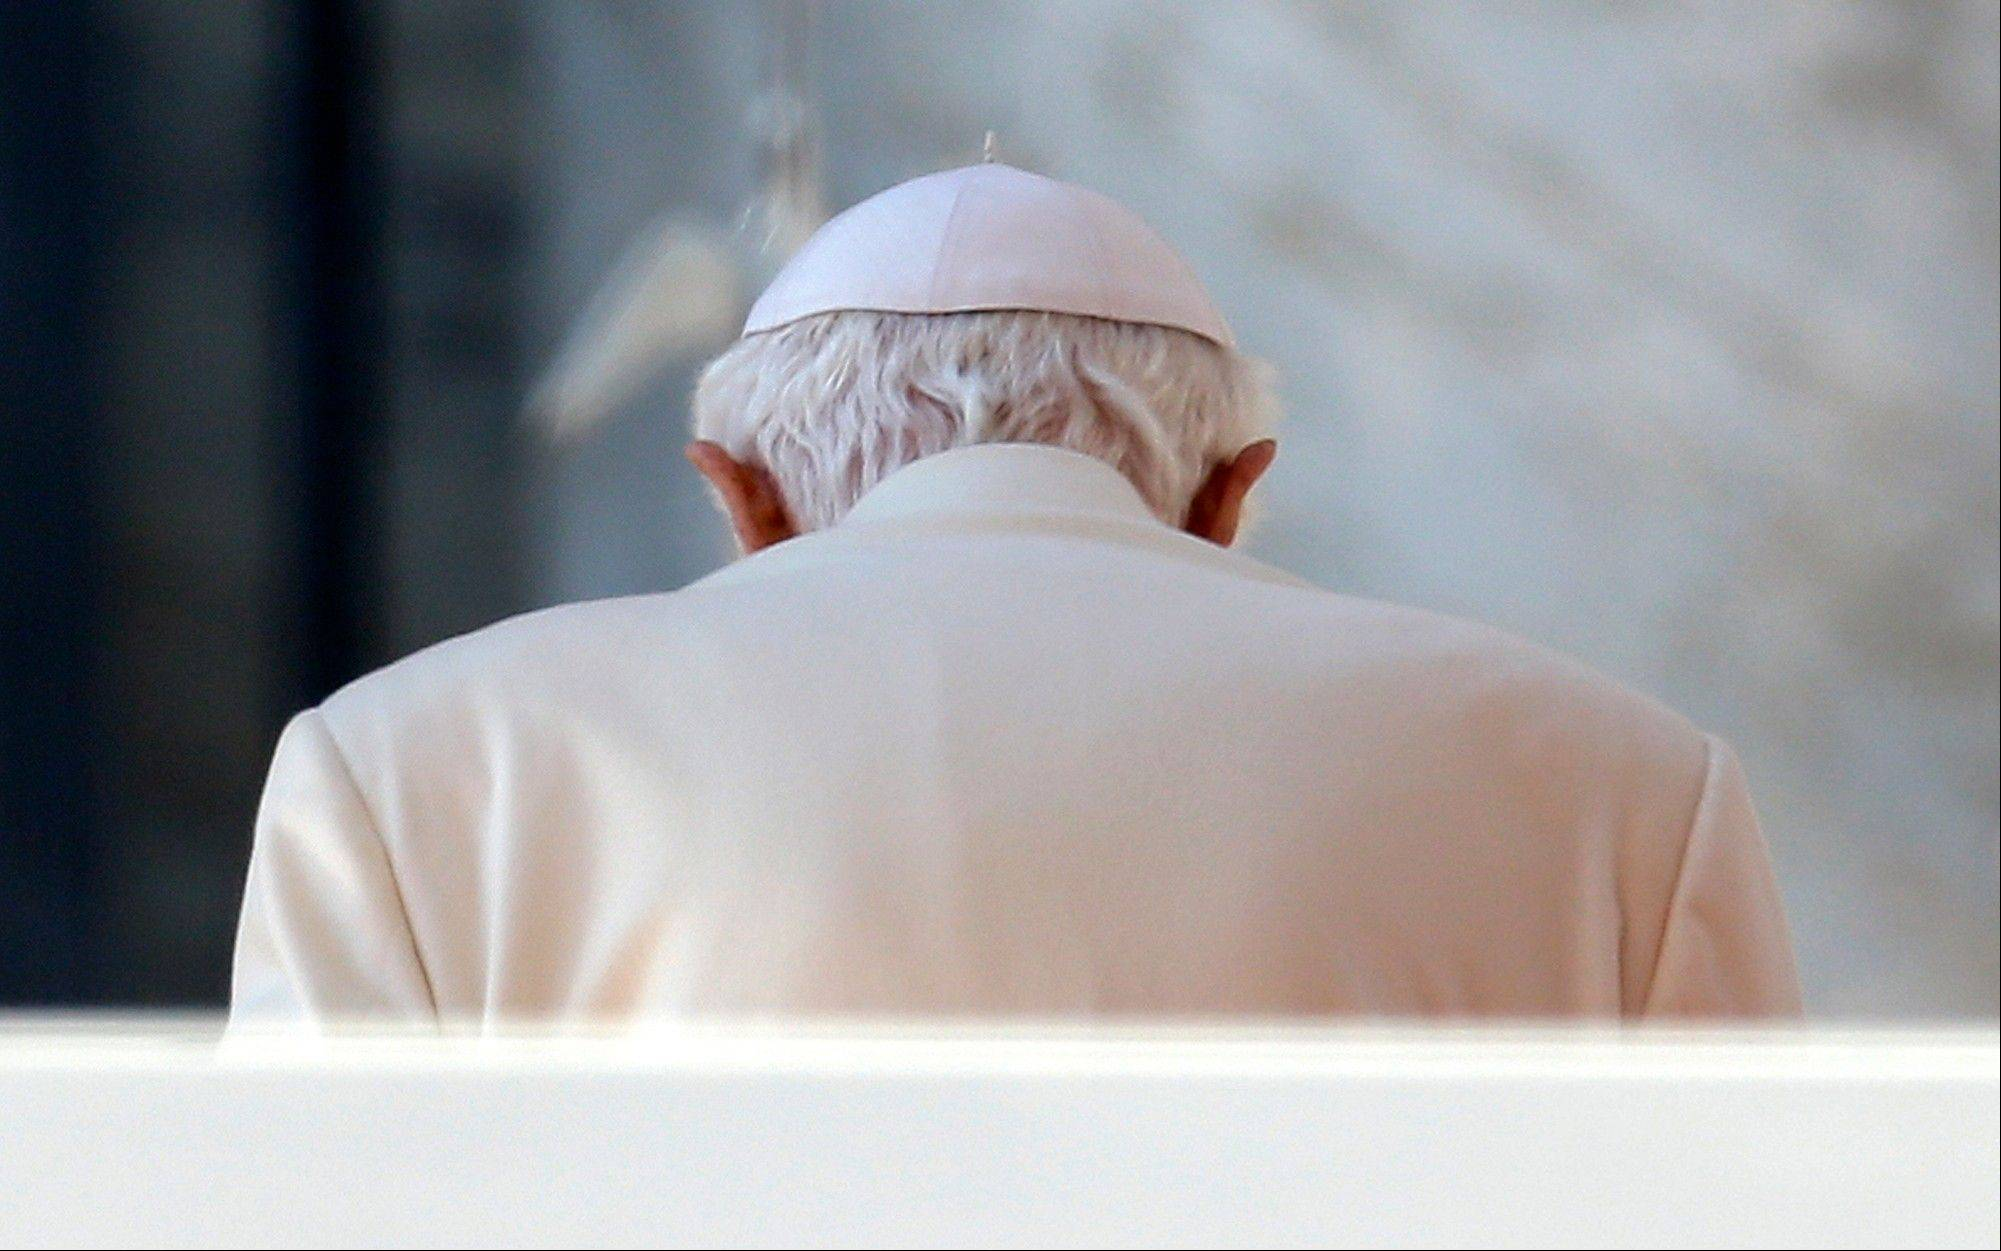 Pope Benedict XVI leaves after celebrating his final general audience in St. Peter's Square Wednesday at the Vatican. Cardinals will begin meeting Monday to set the date for the conclave to elect the next pope.